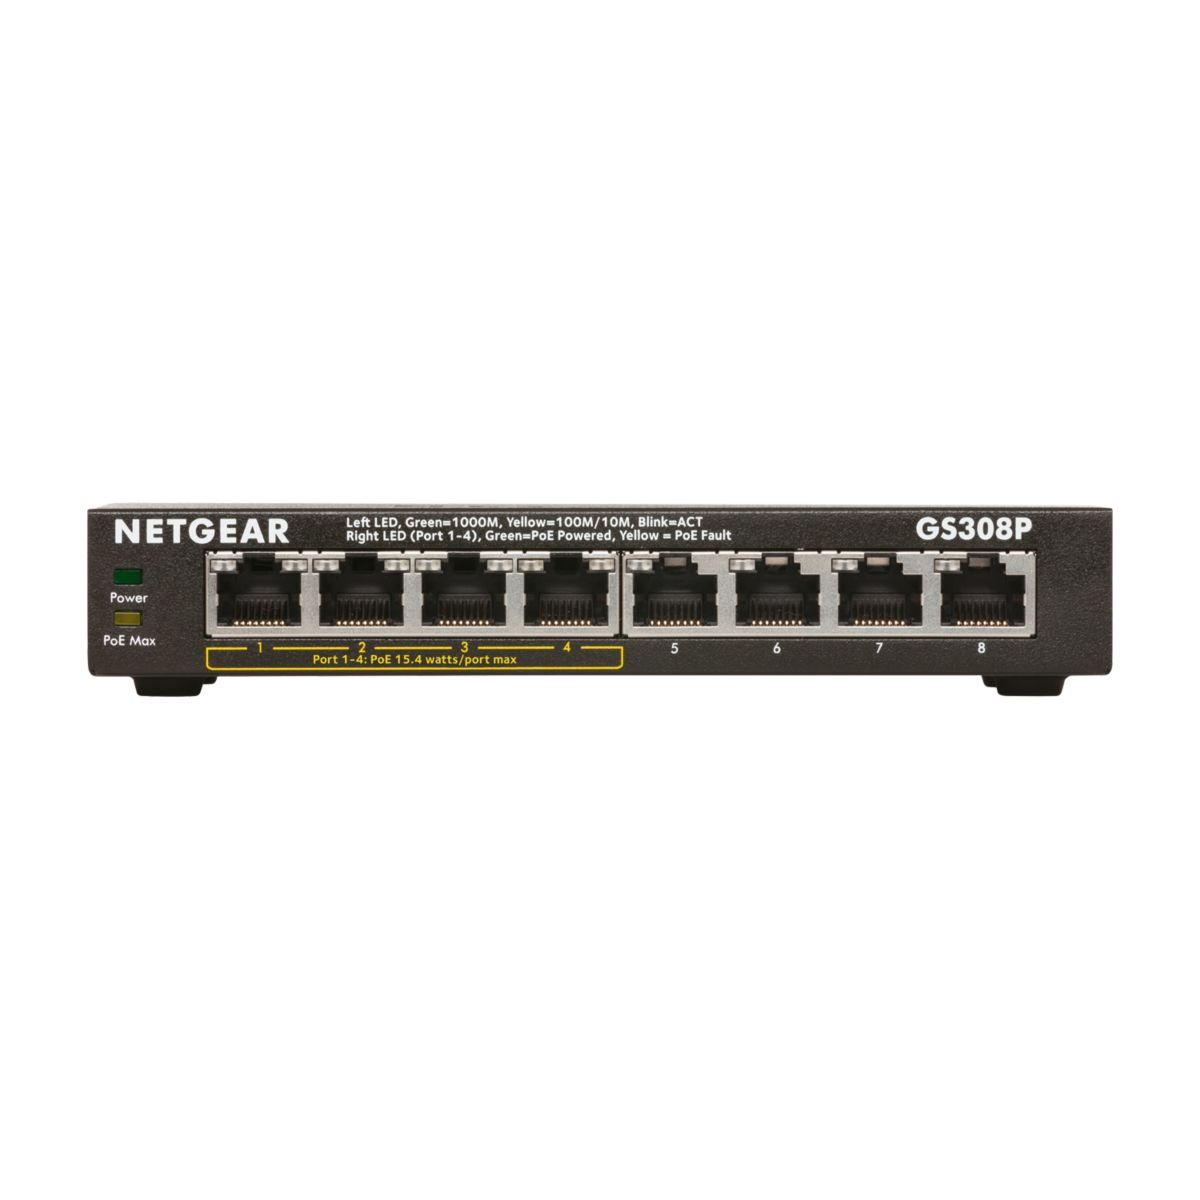 GS308P-100NAS Unmanaged Network Switch